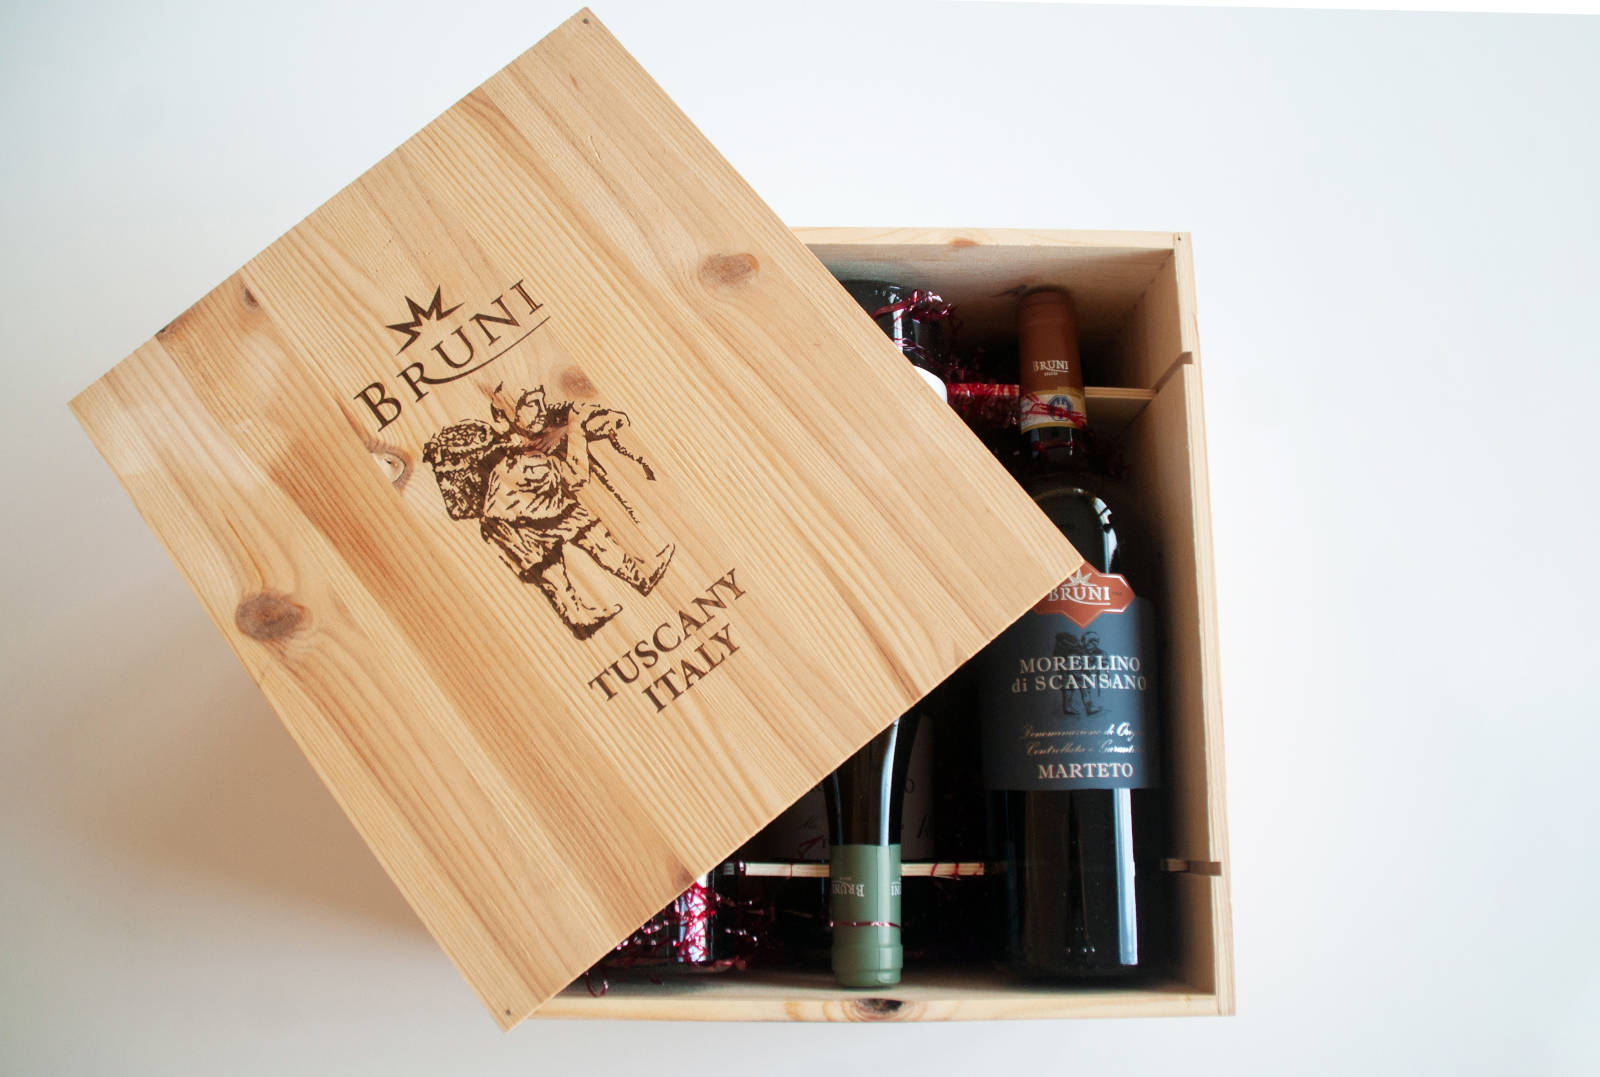 Wine Boxes - Cantine Bruni